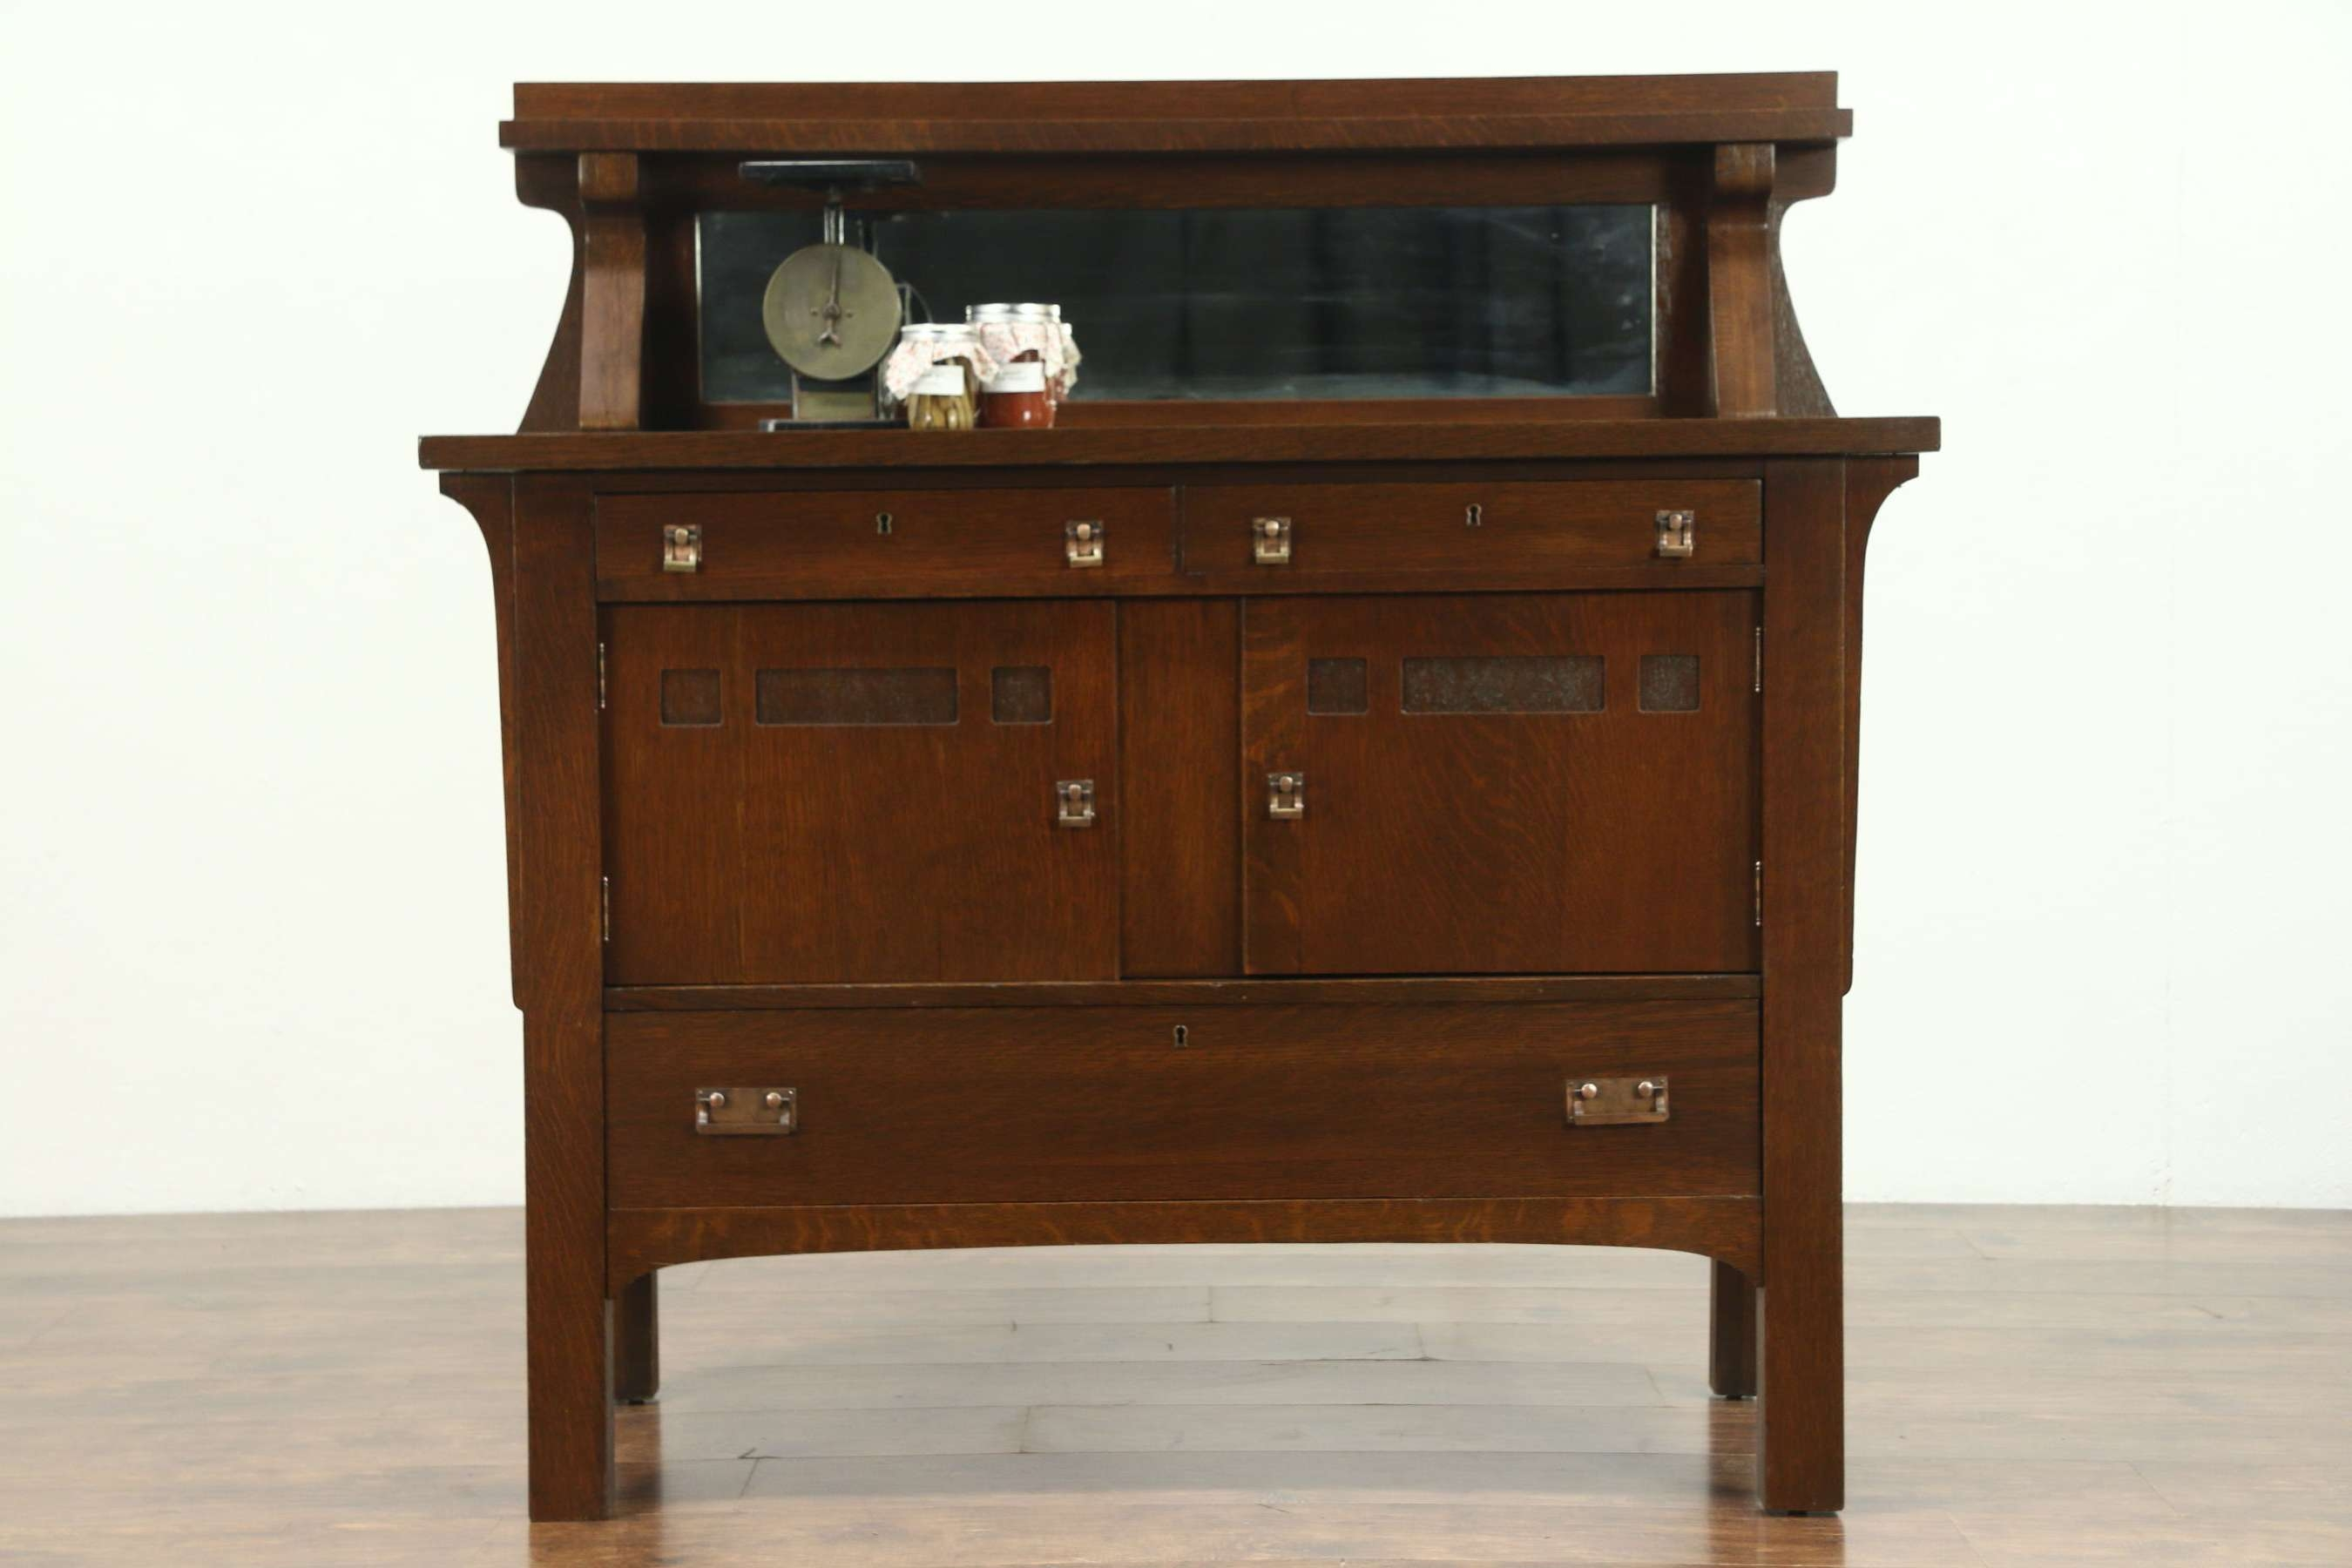 Arts & Crafts Mission Oak Antique Sideboard Server Or Craftsman Pertaining To Antique Sideboards With Mirror (View 5 of 20)